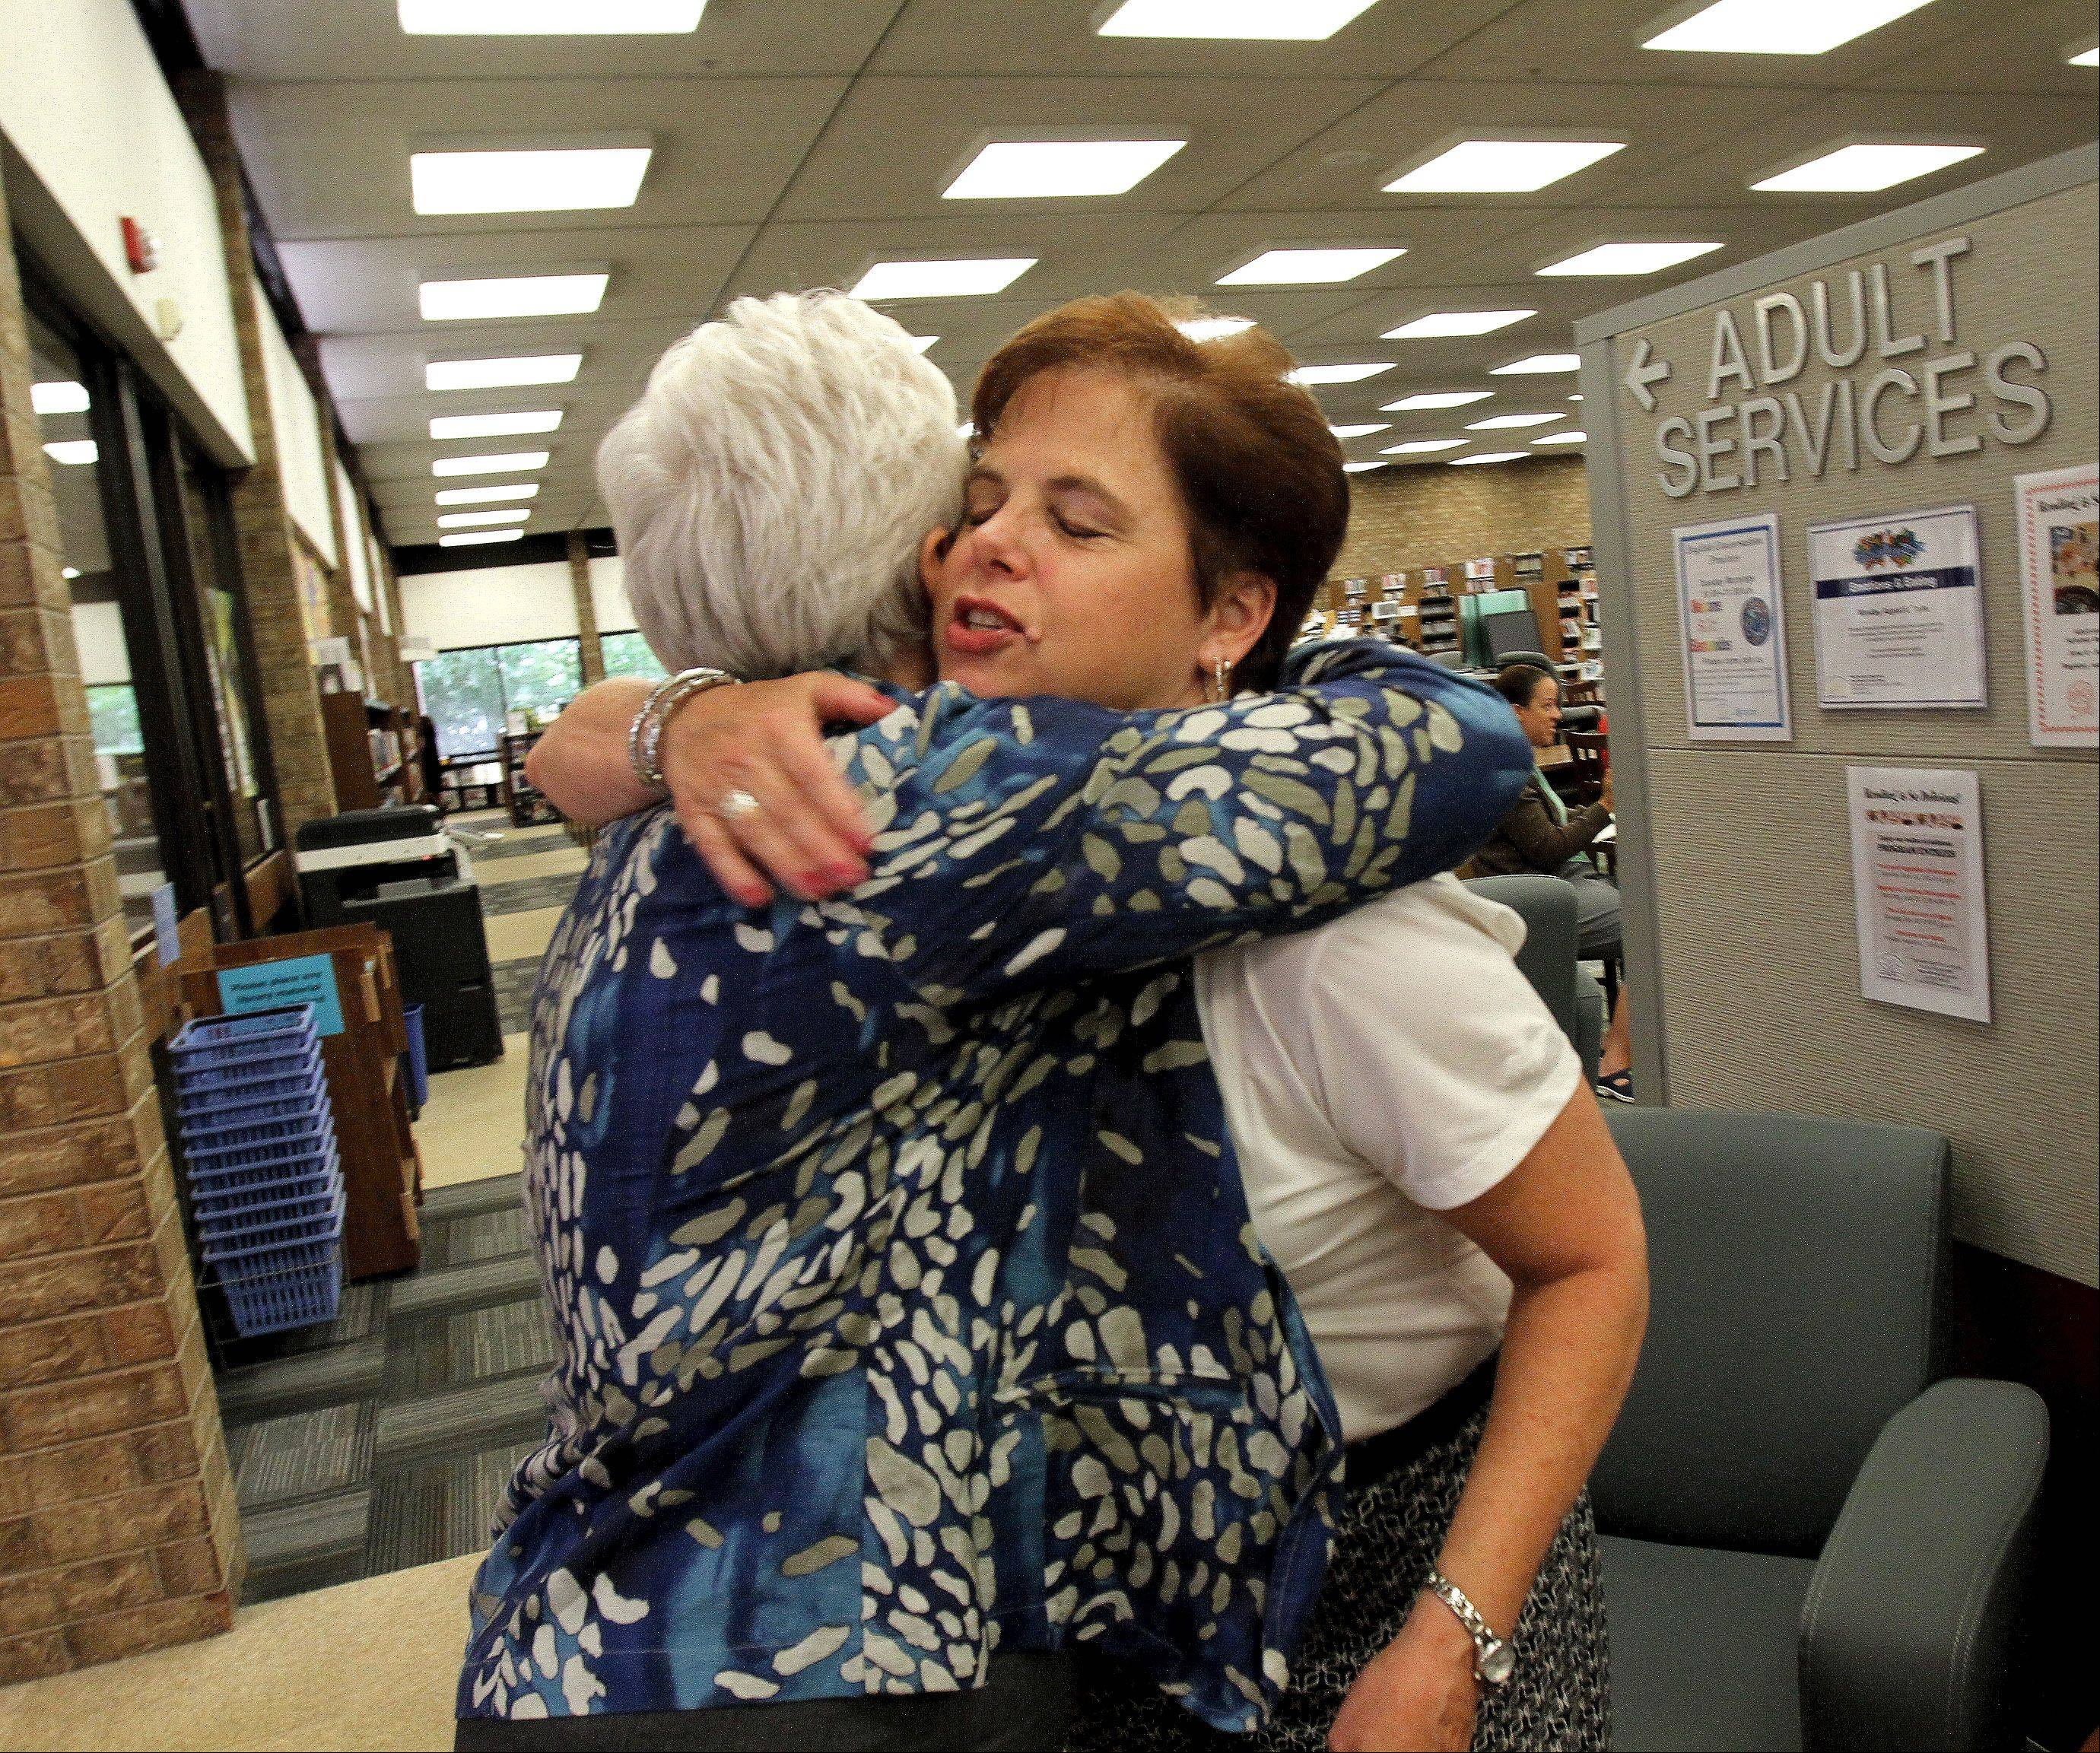 Ann Kennedy, right, hugs Mary Clemens, the interim director of the Carol Stream Public Library, a day after the library board voted to dismiss Kennedy as director.